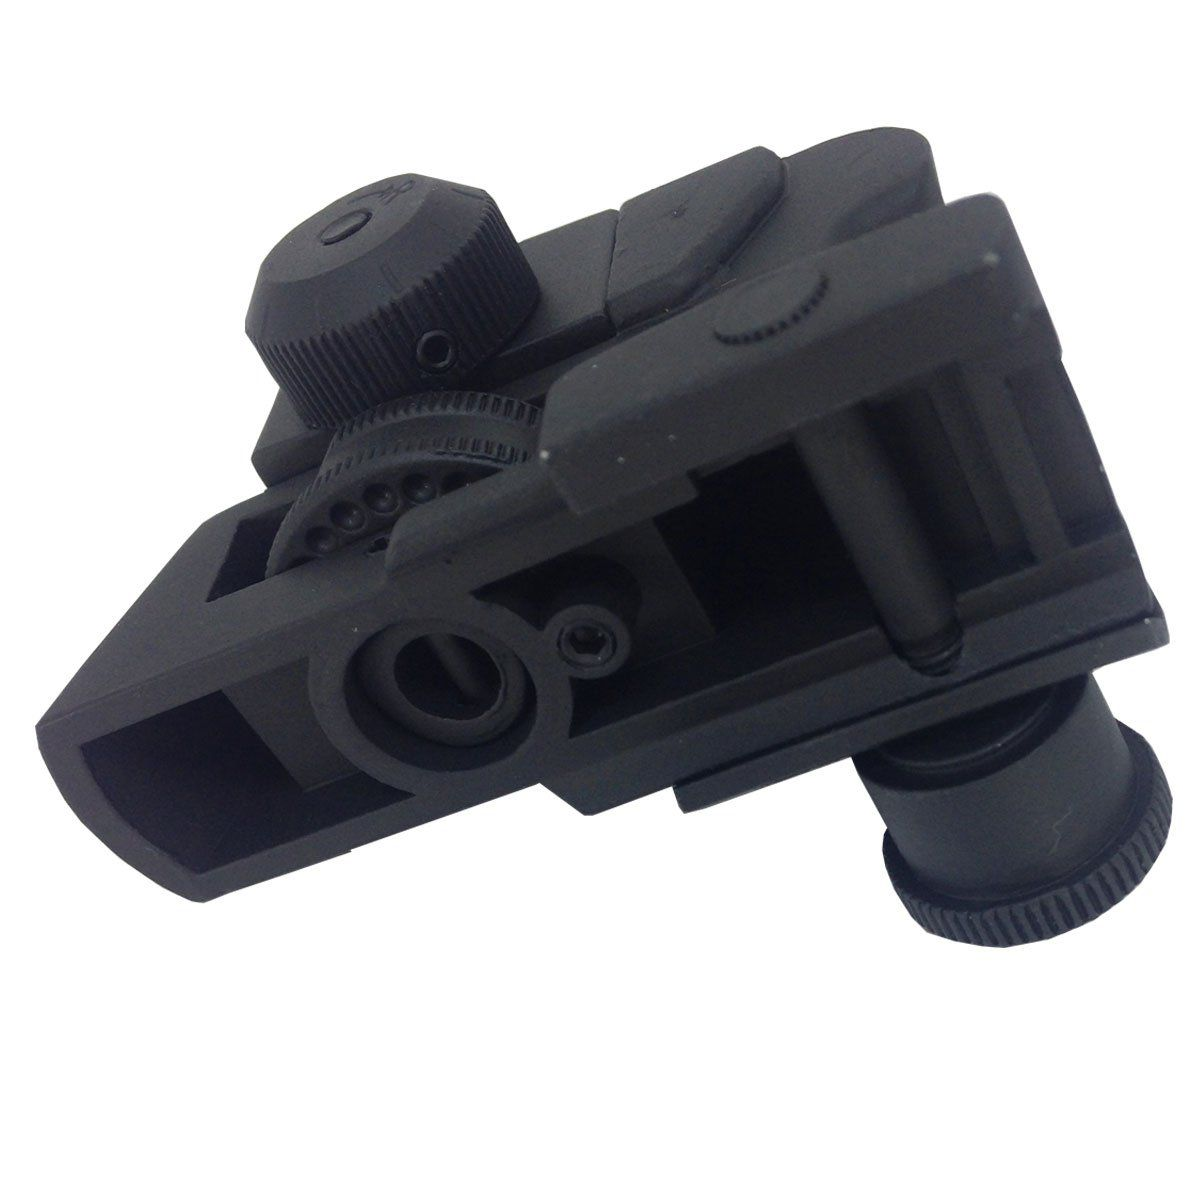 Alça de Mira Para Airsoft C-MP005-1 20mm E&C